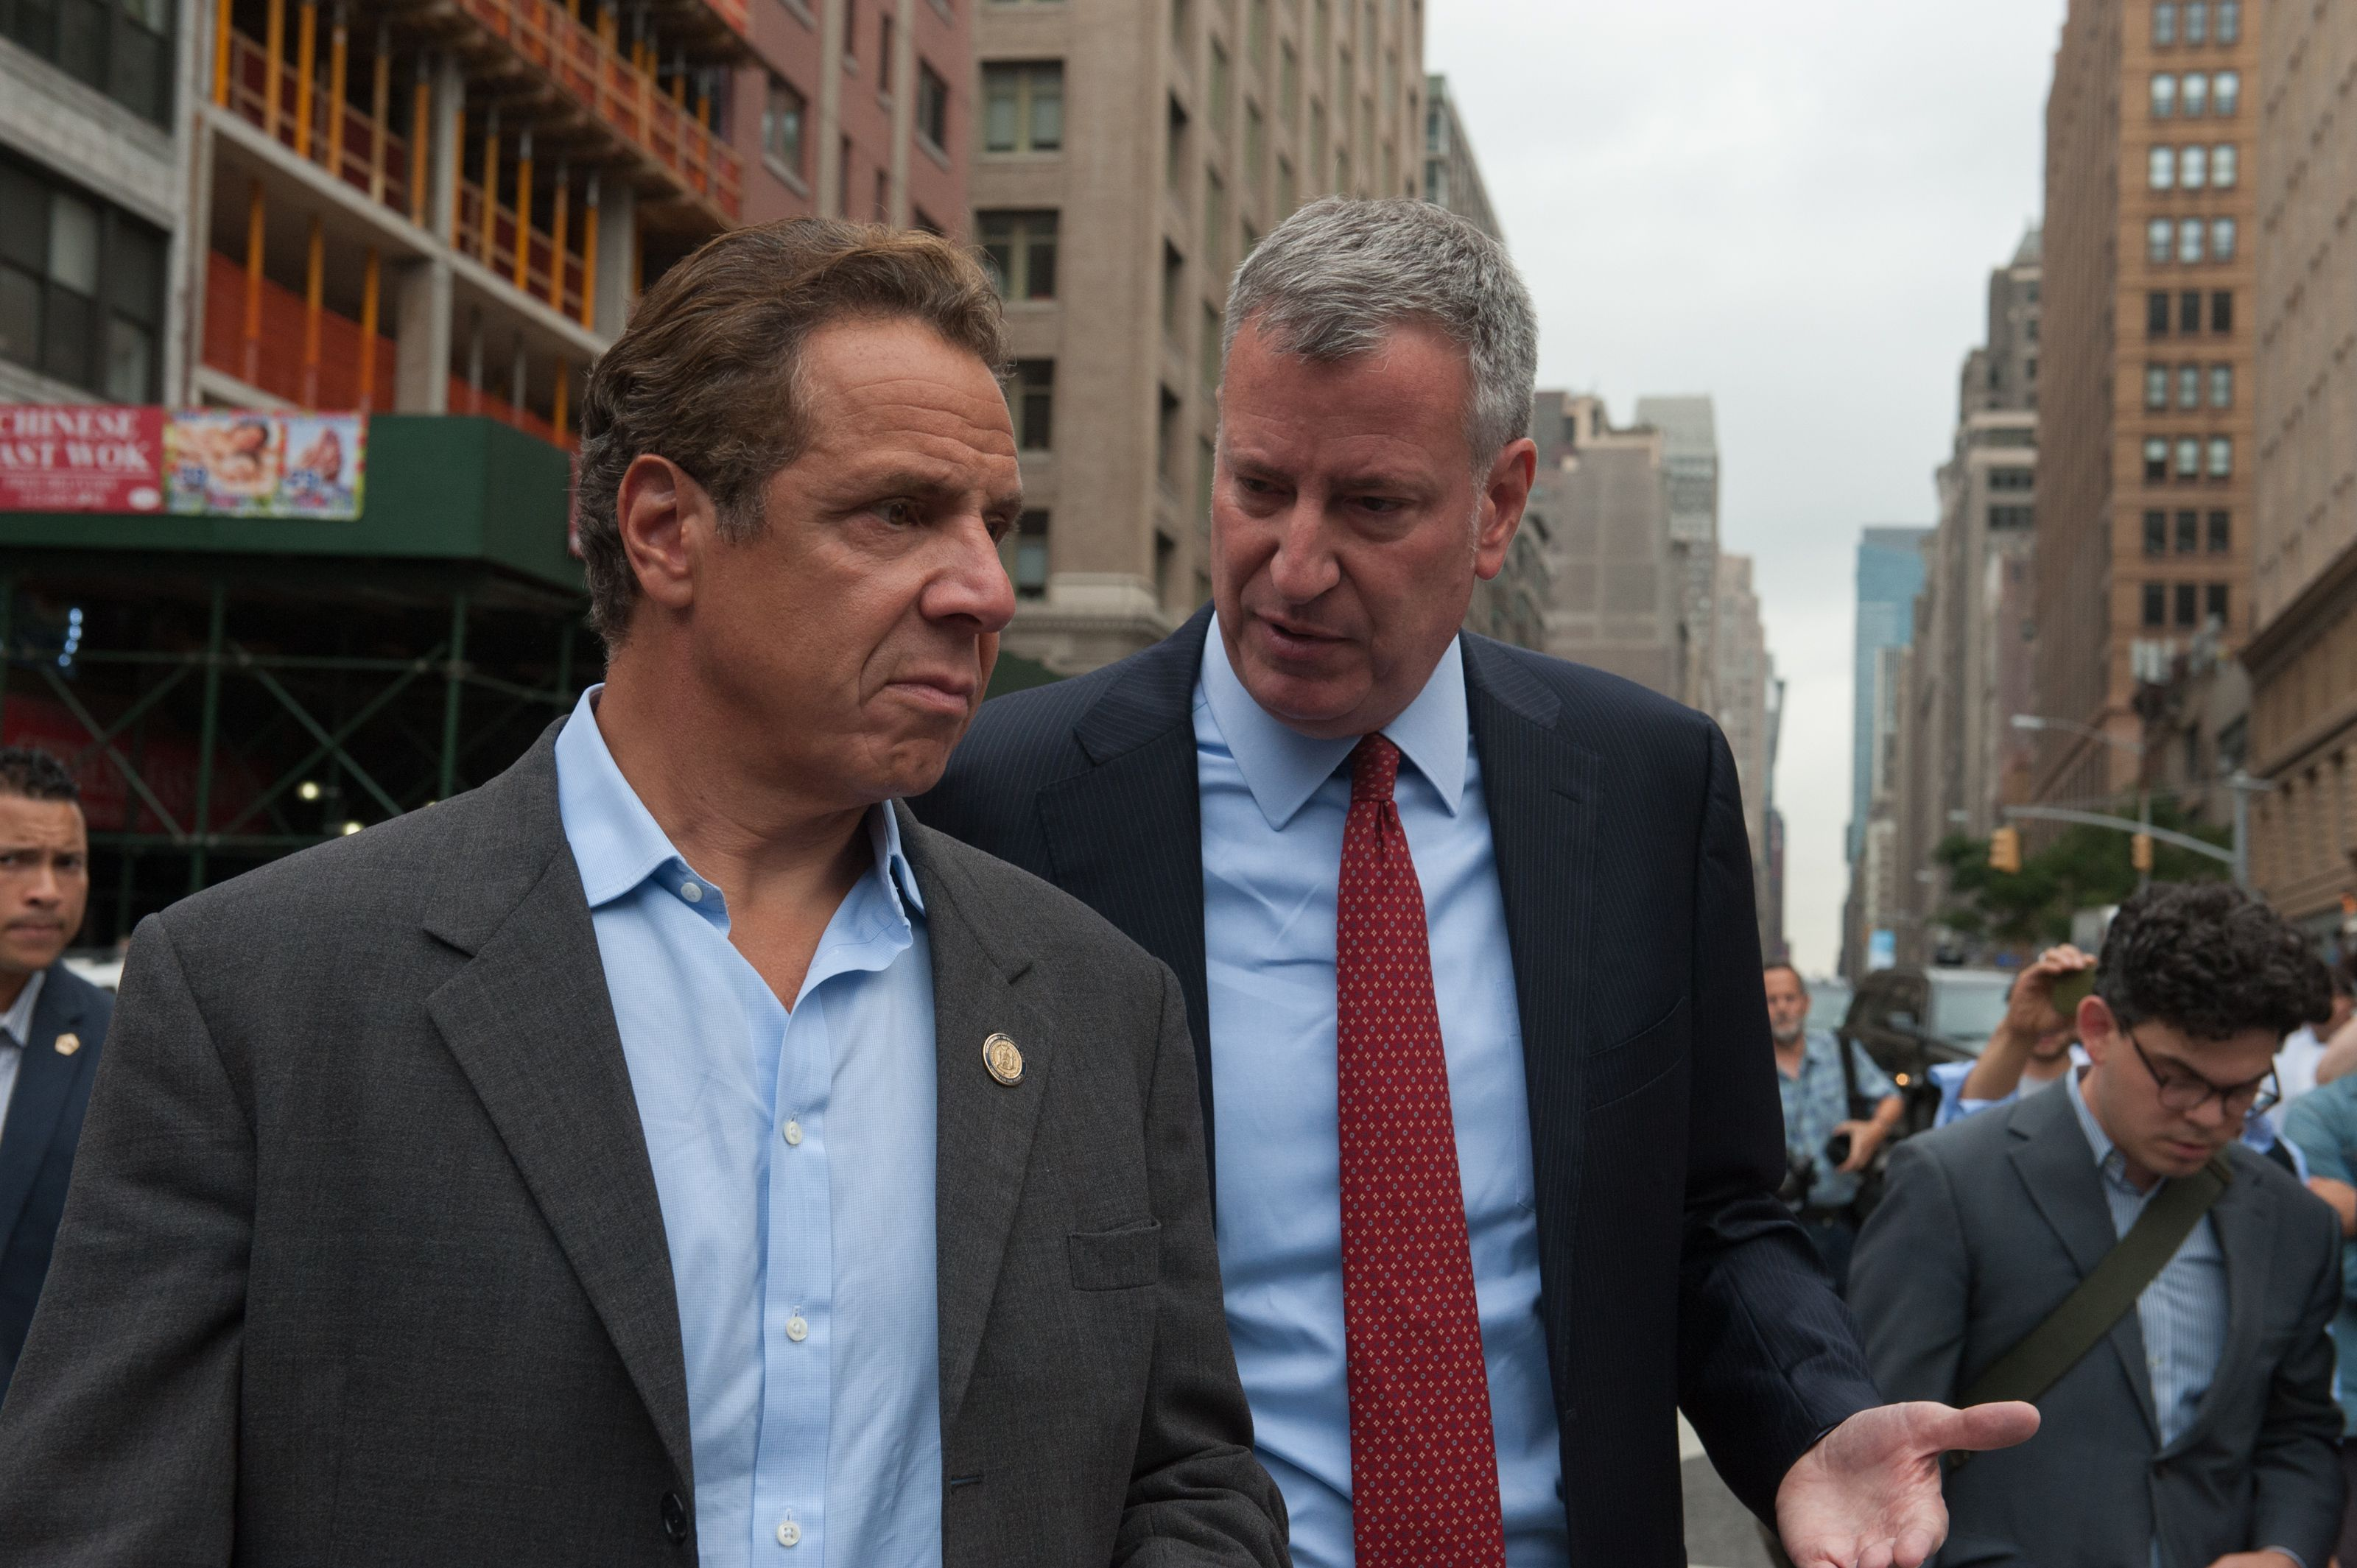 Squabbling at the beginning of the pandemic between Cuomo, left, and New York City Mayor Bill de Blasio, right, resulted in a